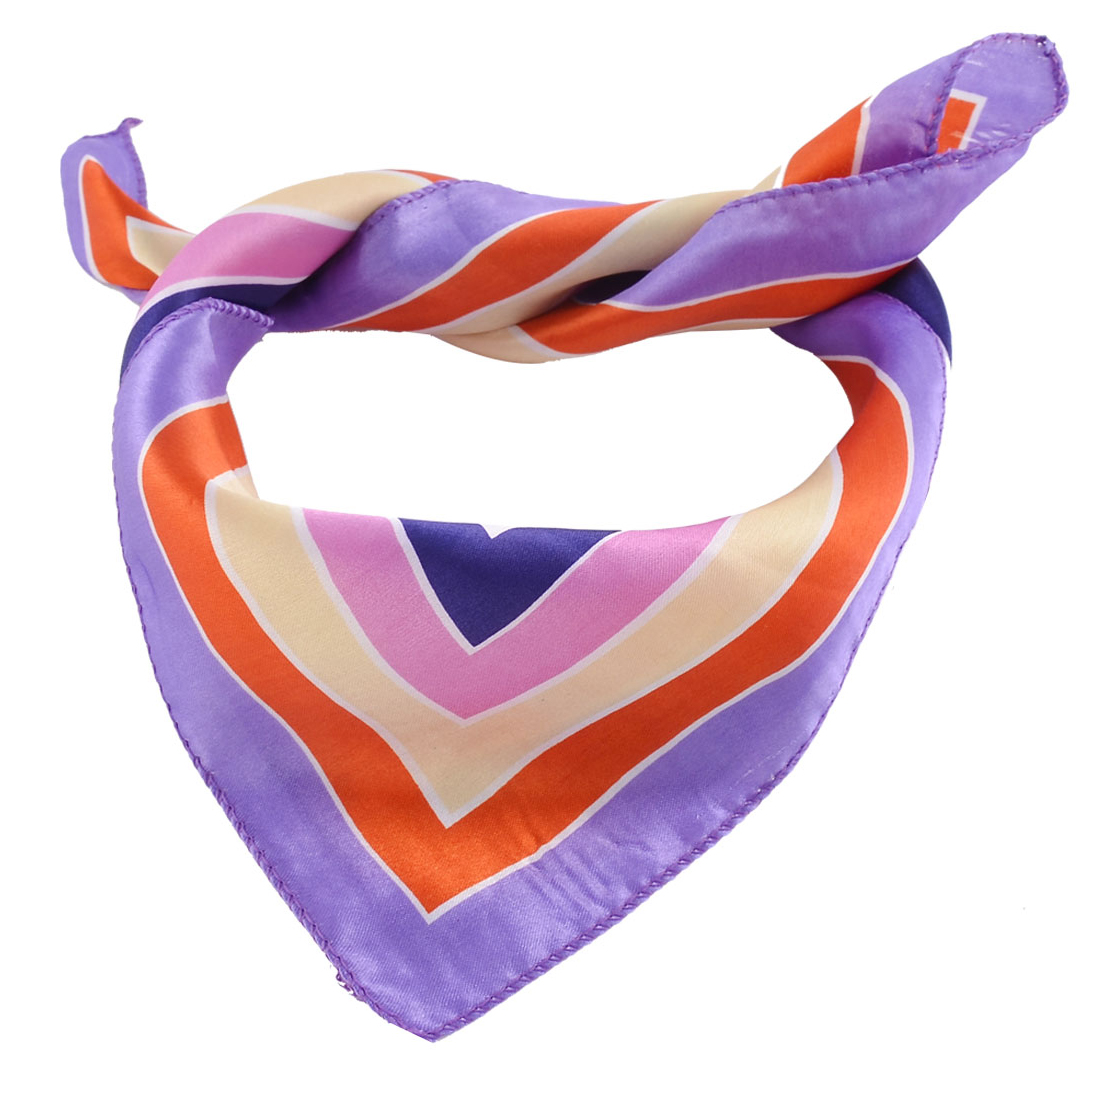 Lady Polyester Square Grid Pattern Scarf Neckerchief Shawl Colorful 51cm x 51cm